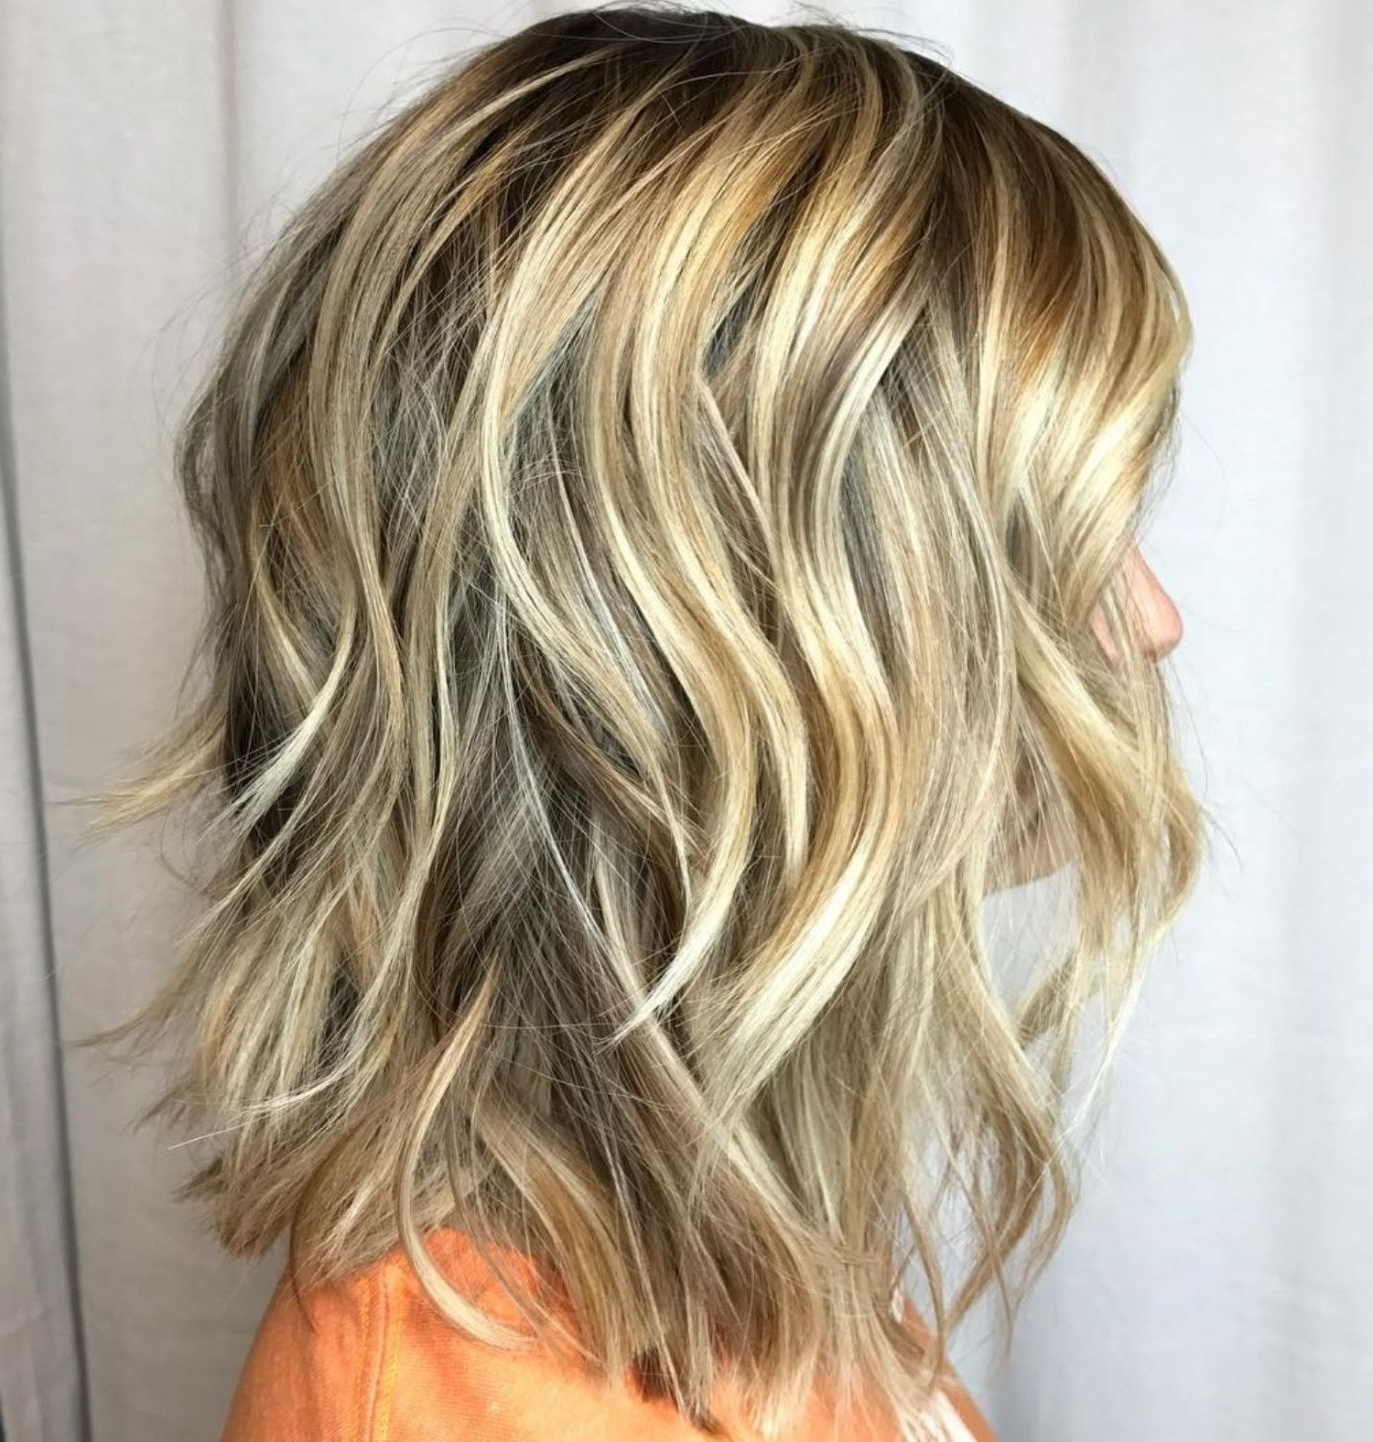 60 Best Variations Of A Medium Shag Haircut For Your For Short Warm Blonde Shag Haircuts (View 2 of 20)